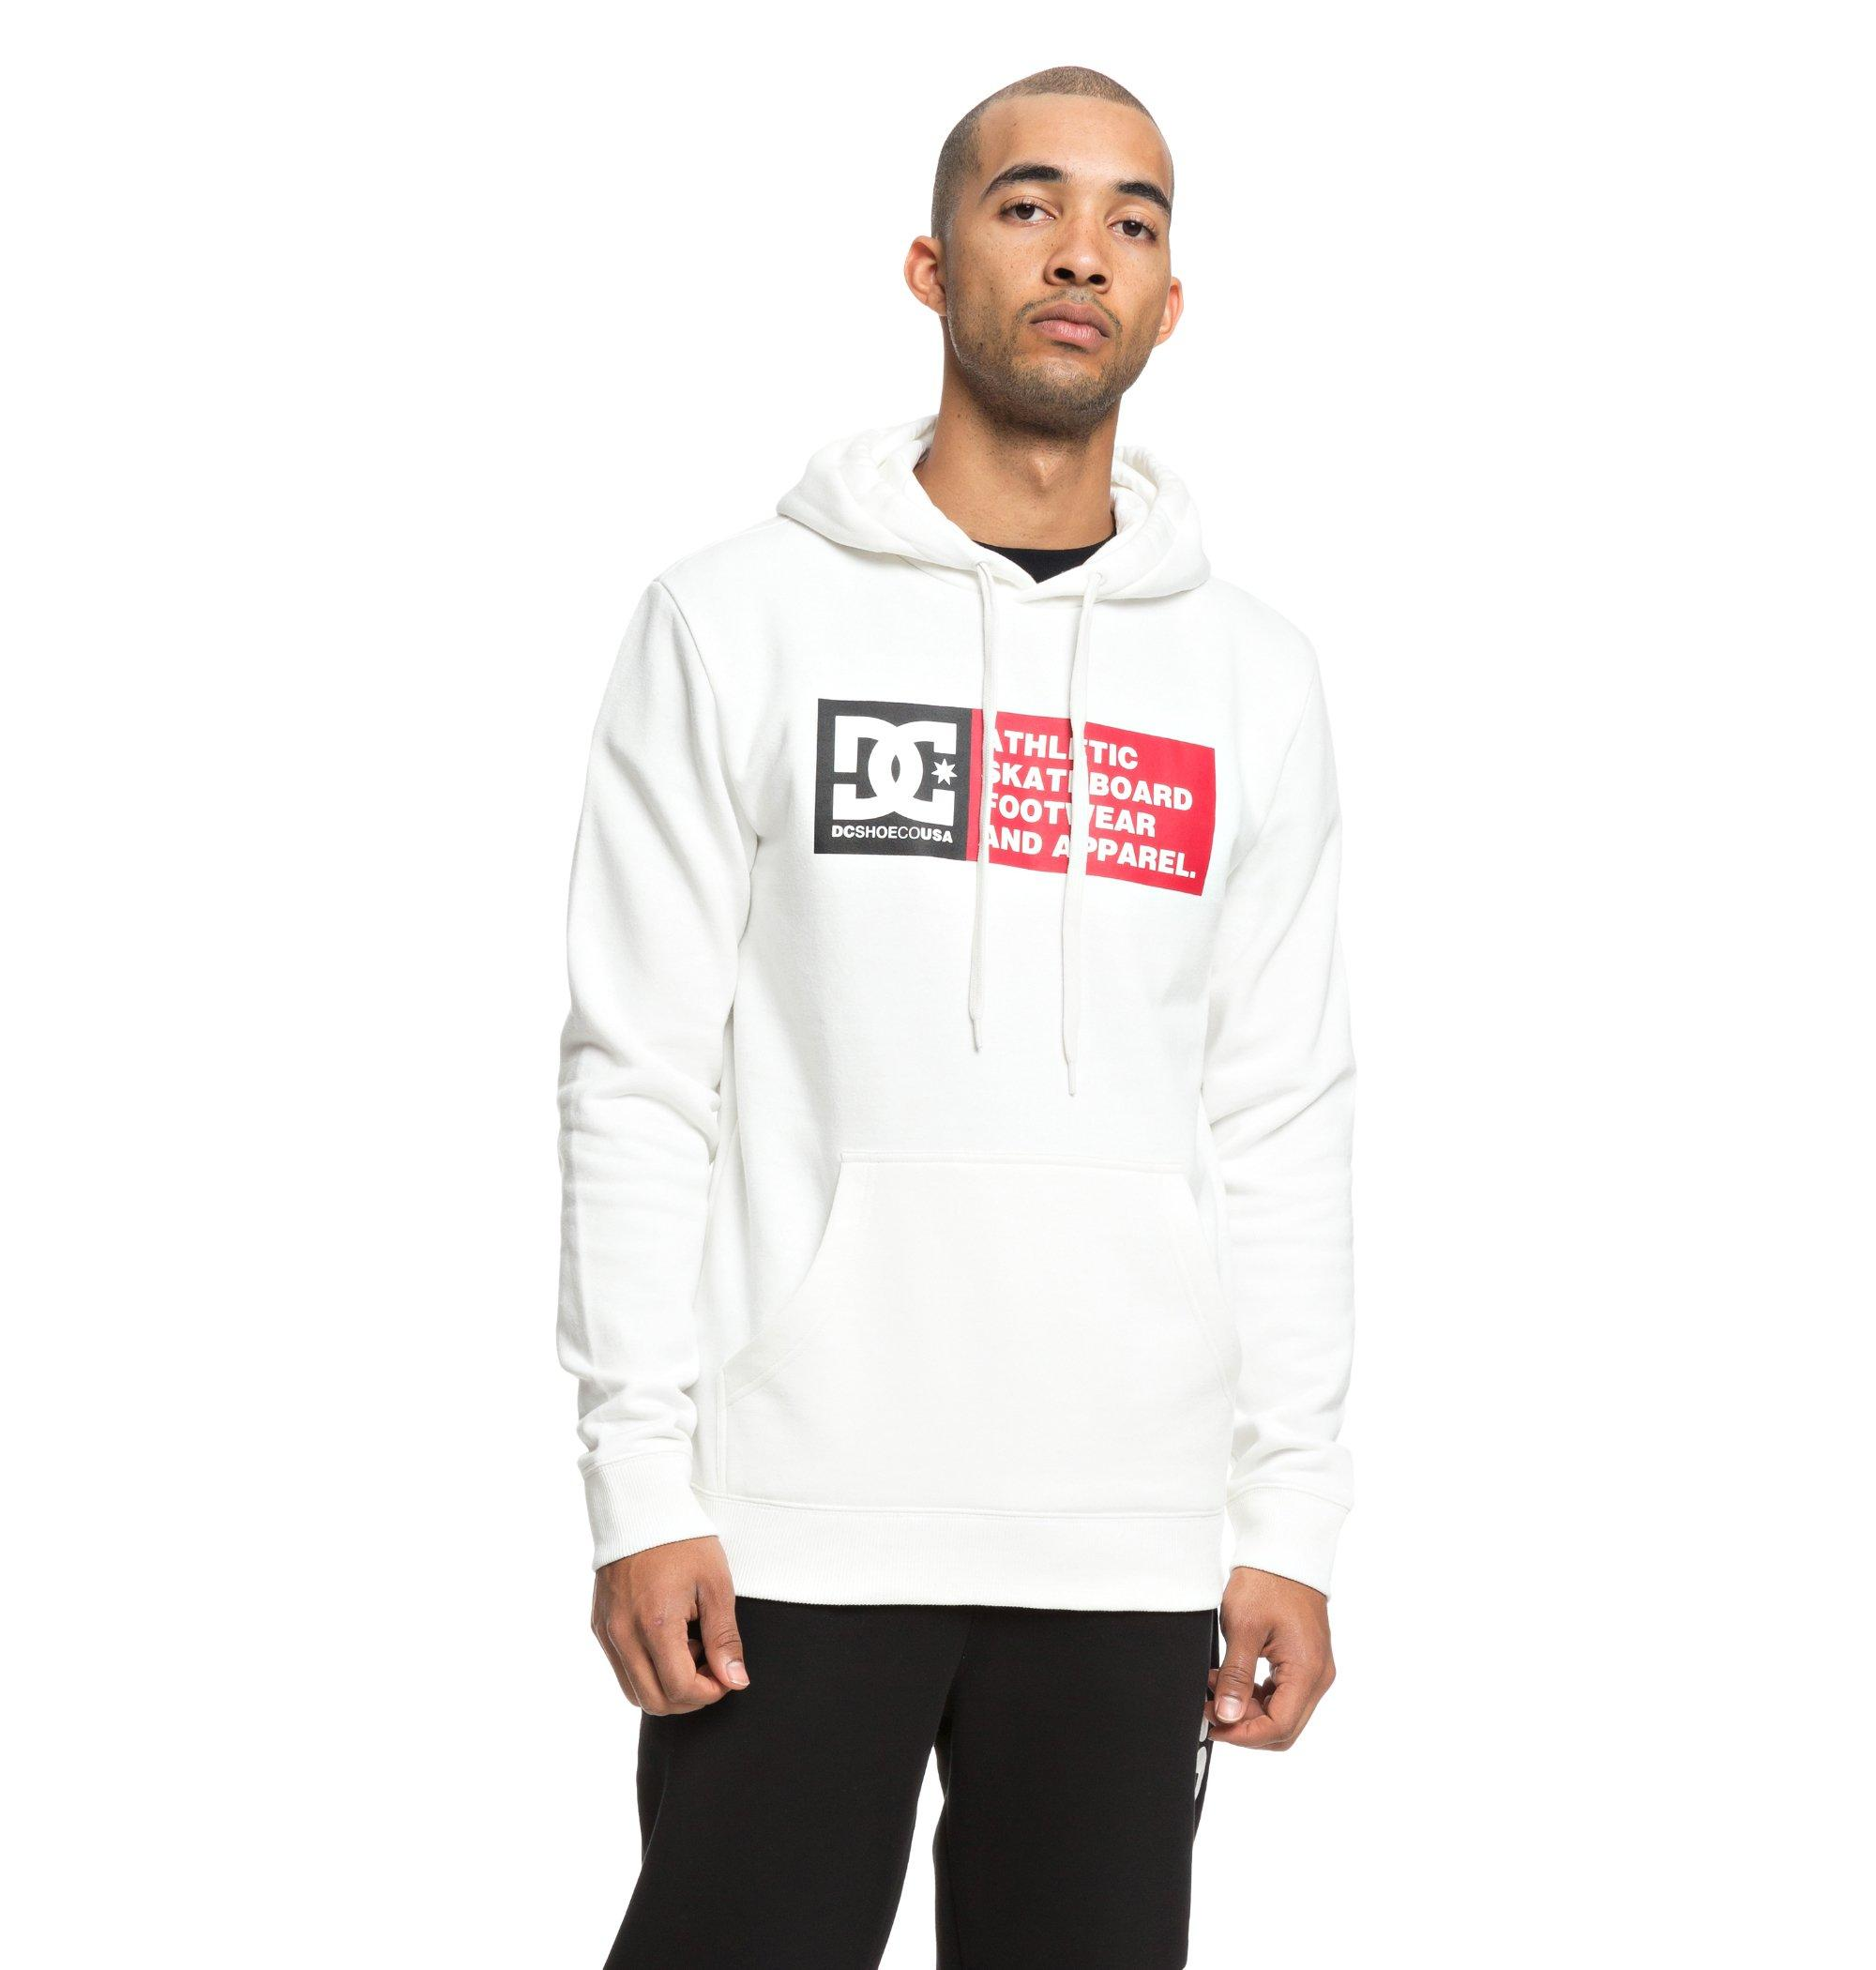 Sudadera Dc Shoes modelo Vertical Zone en color blanco para hombre-e